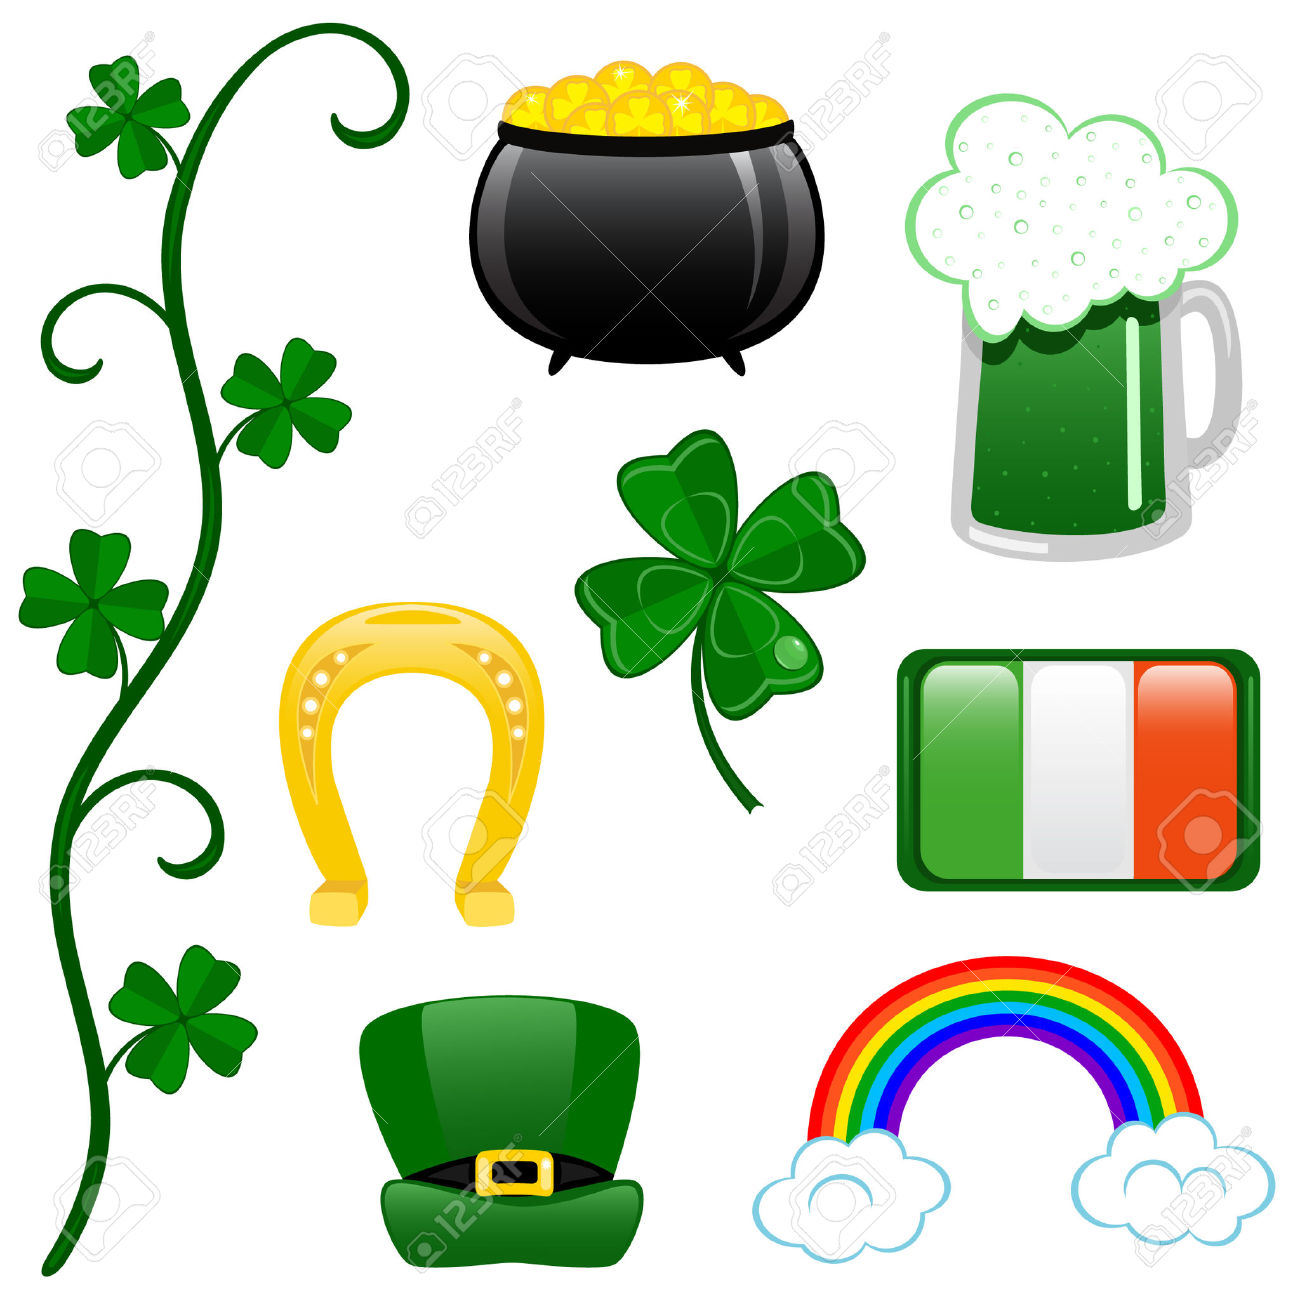 Saint patrick day pictures free download best saint patrick day 1300x1300 st patrick s day clipart clipart panda biocorpaavc